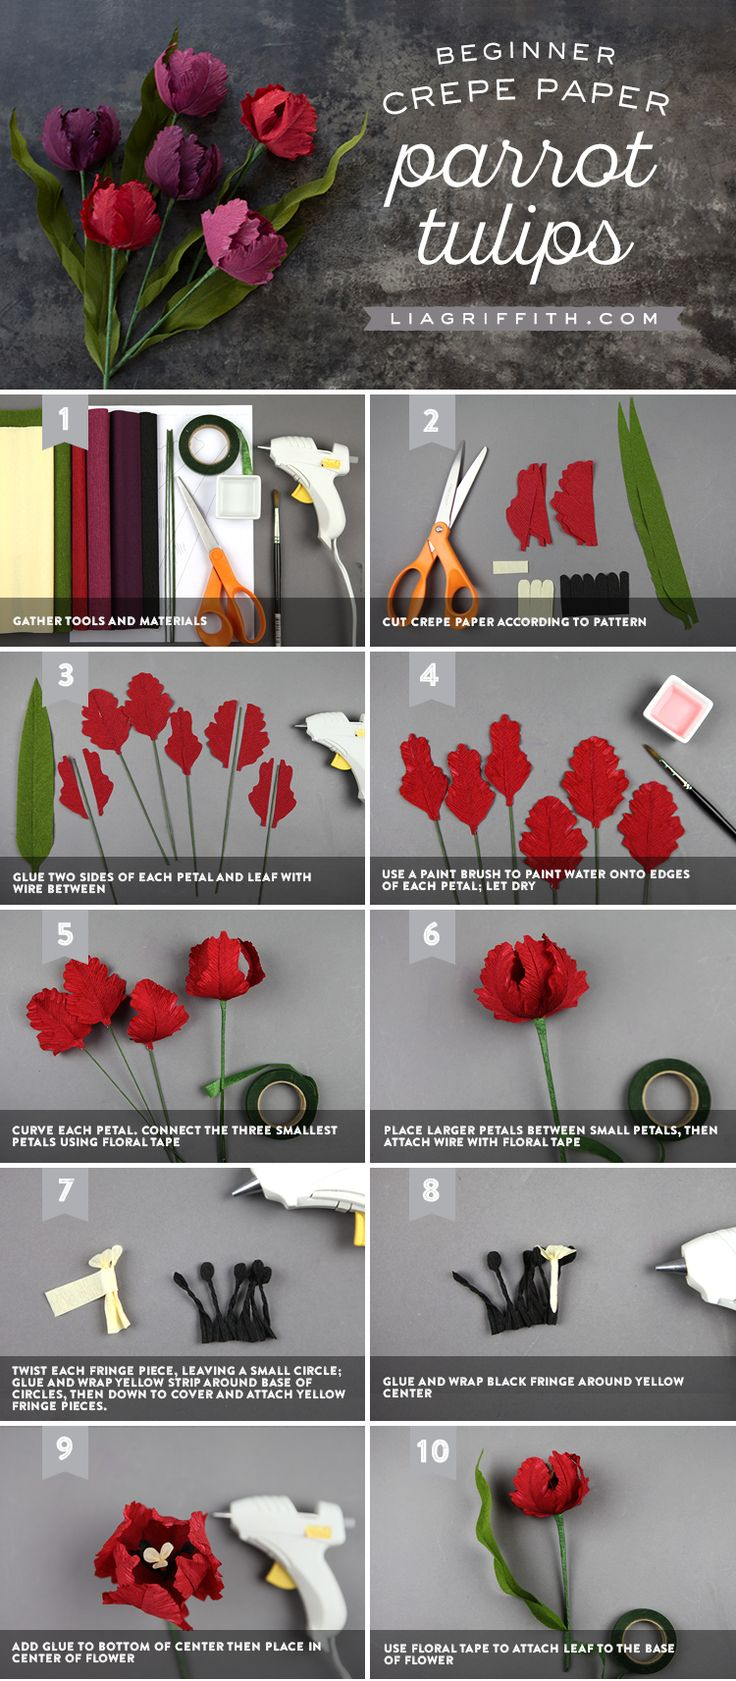 DIY crepe paper parrot tulips that are great for beginners! Download our templates and craft along with our step-by-step photo tutorial today...